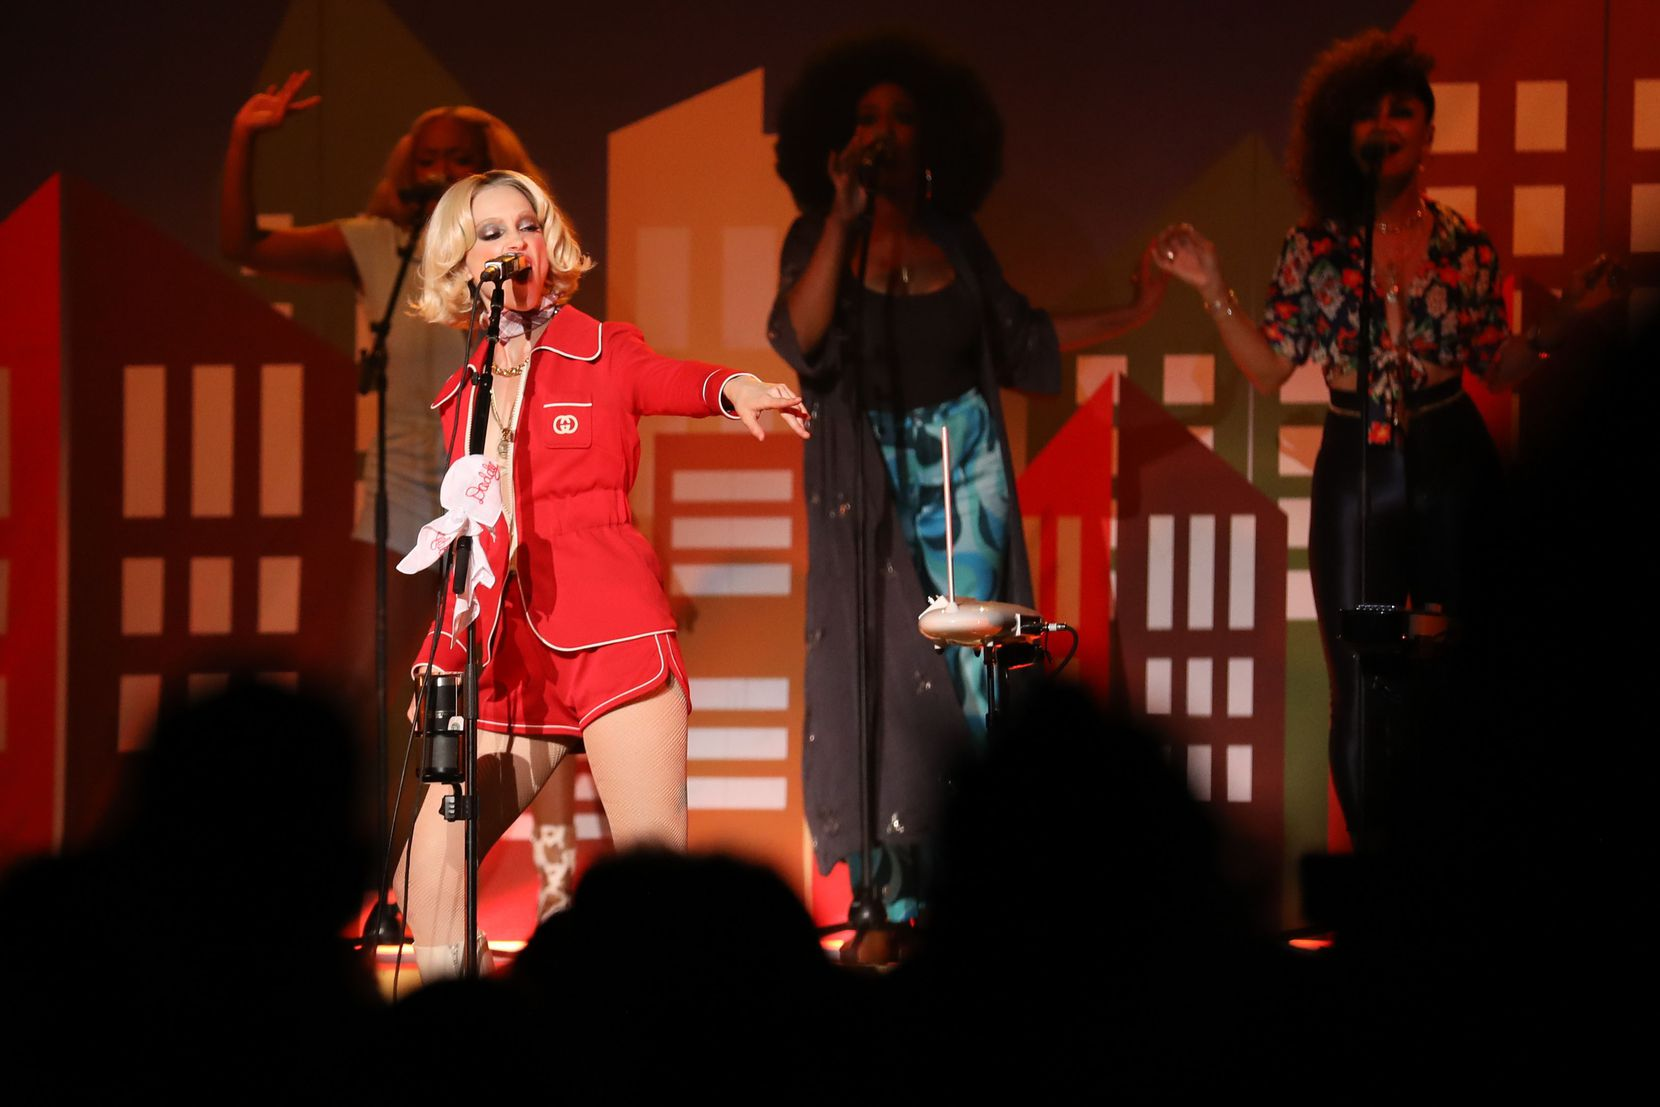 Saturday's show was for long stretches a '70s dance party led by St. Vincent and three female vocalists who backed her up.